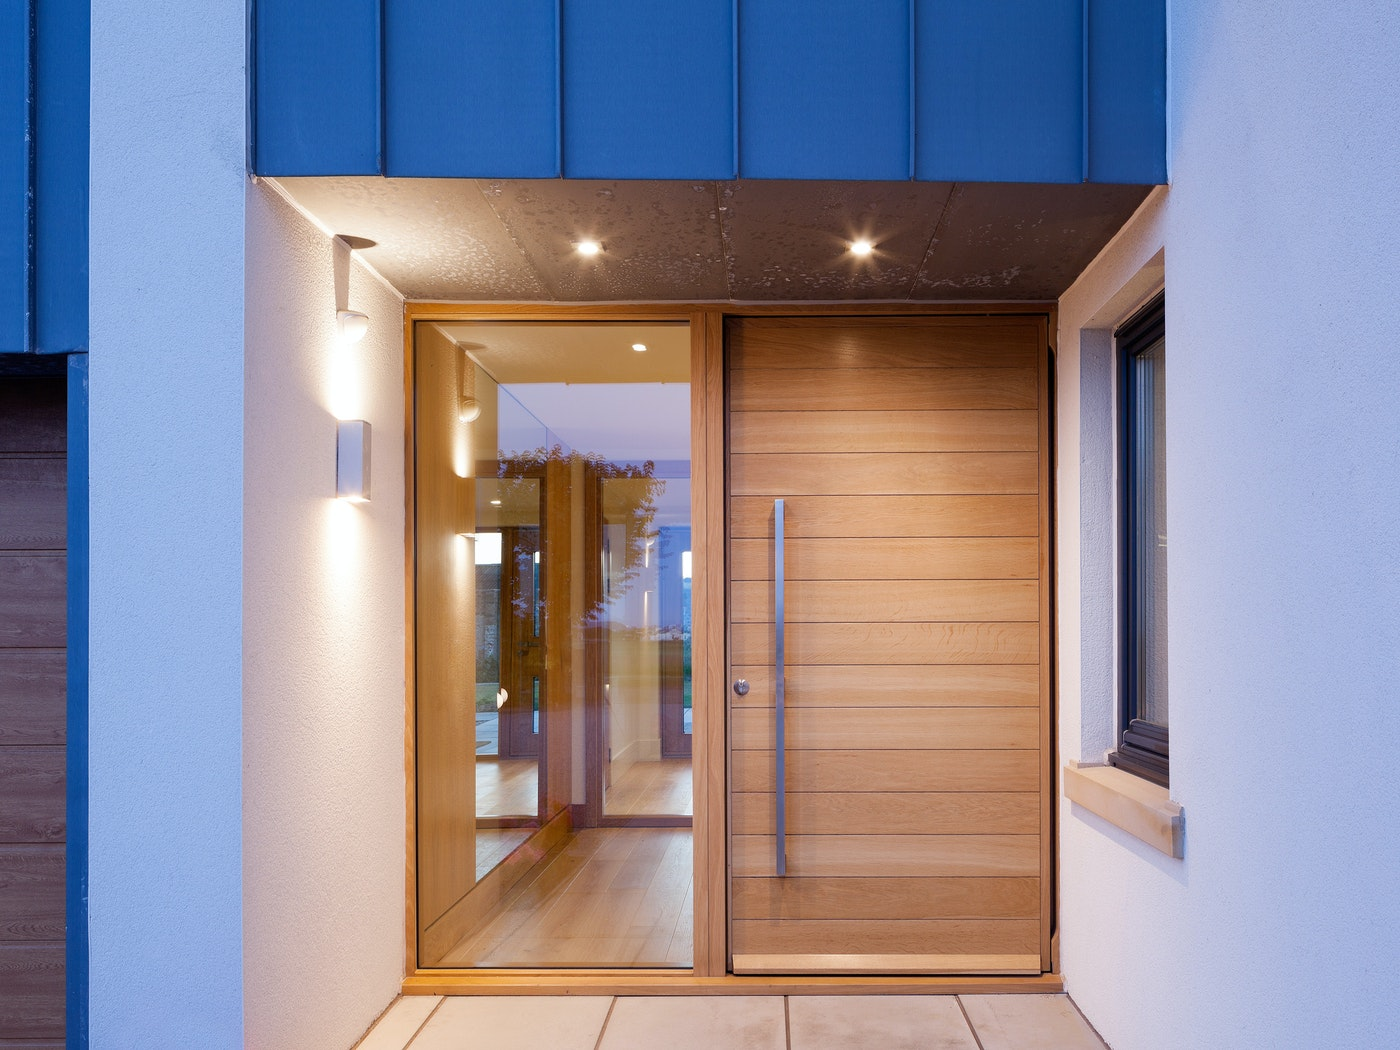 The Parma front door has a glass side panel that complements the glass design in the house